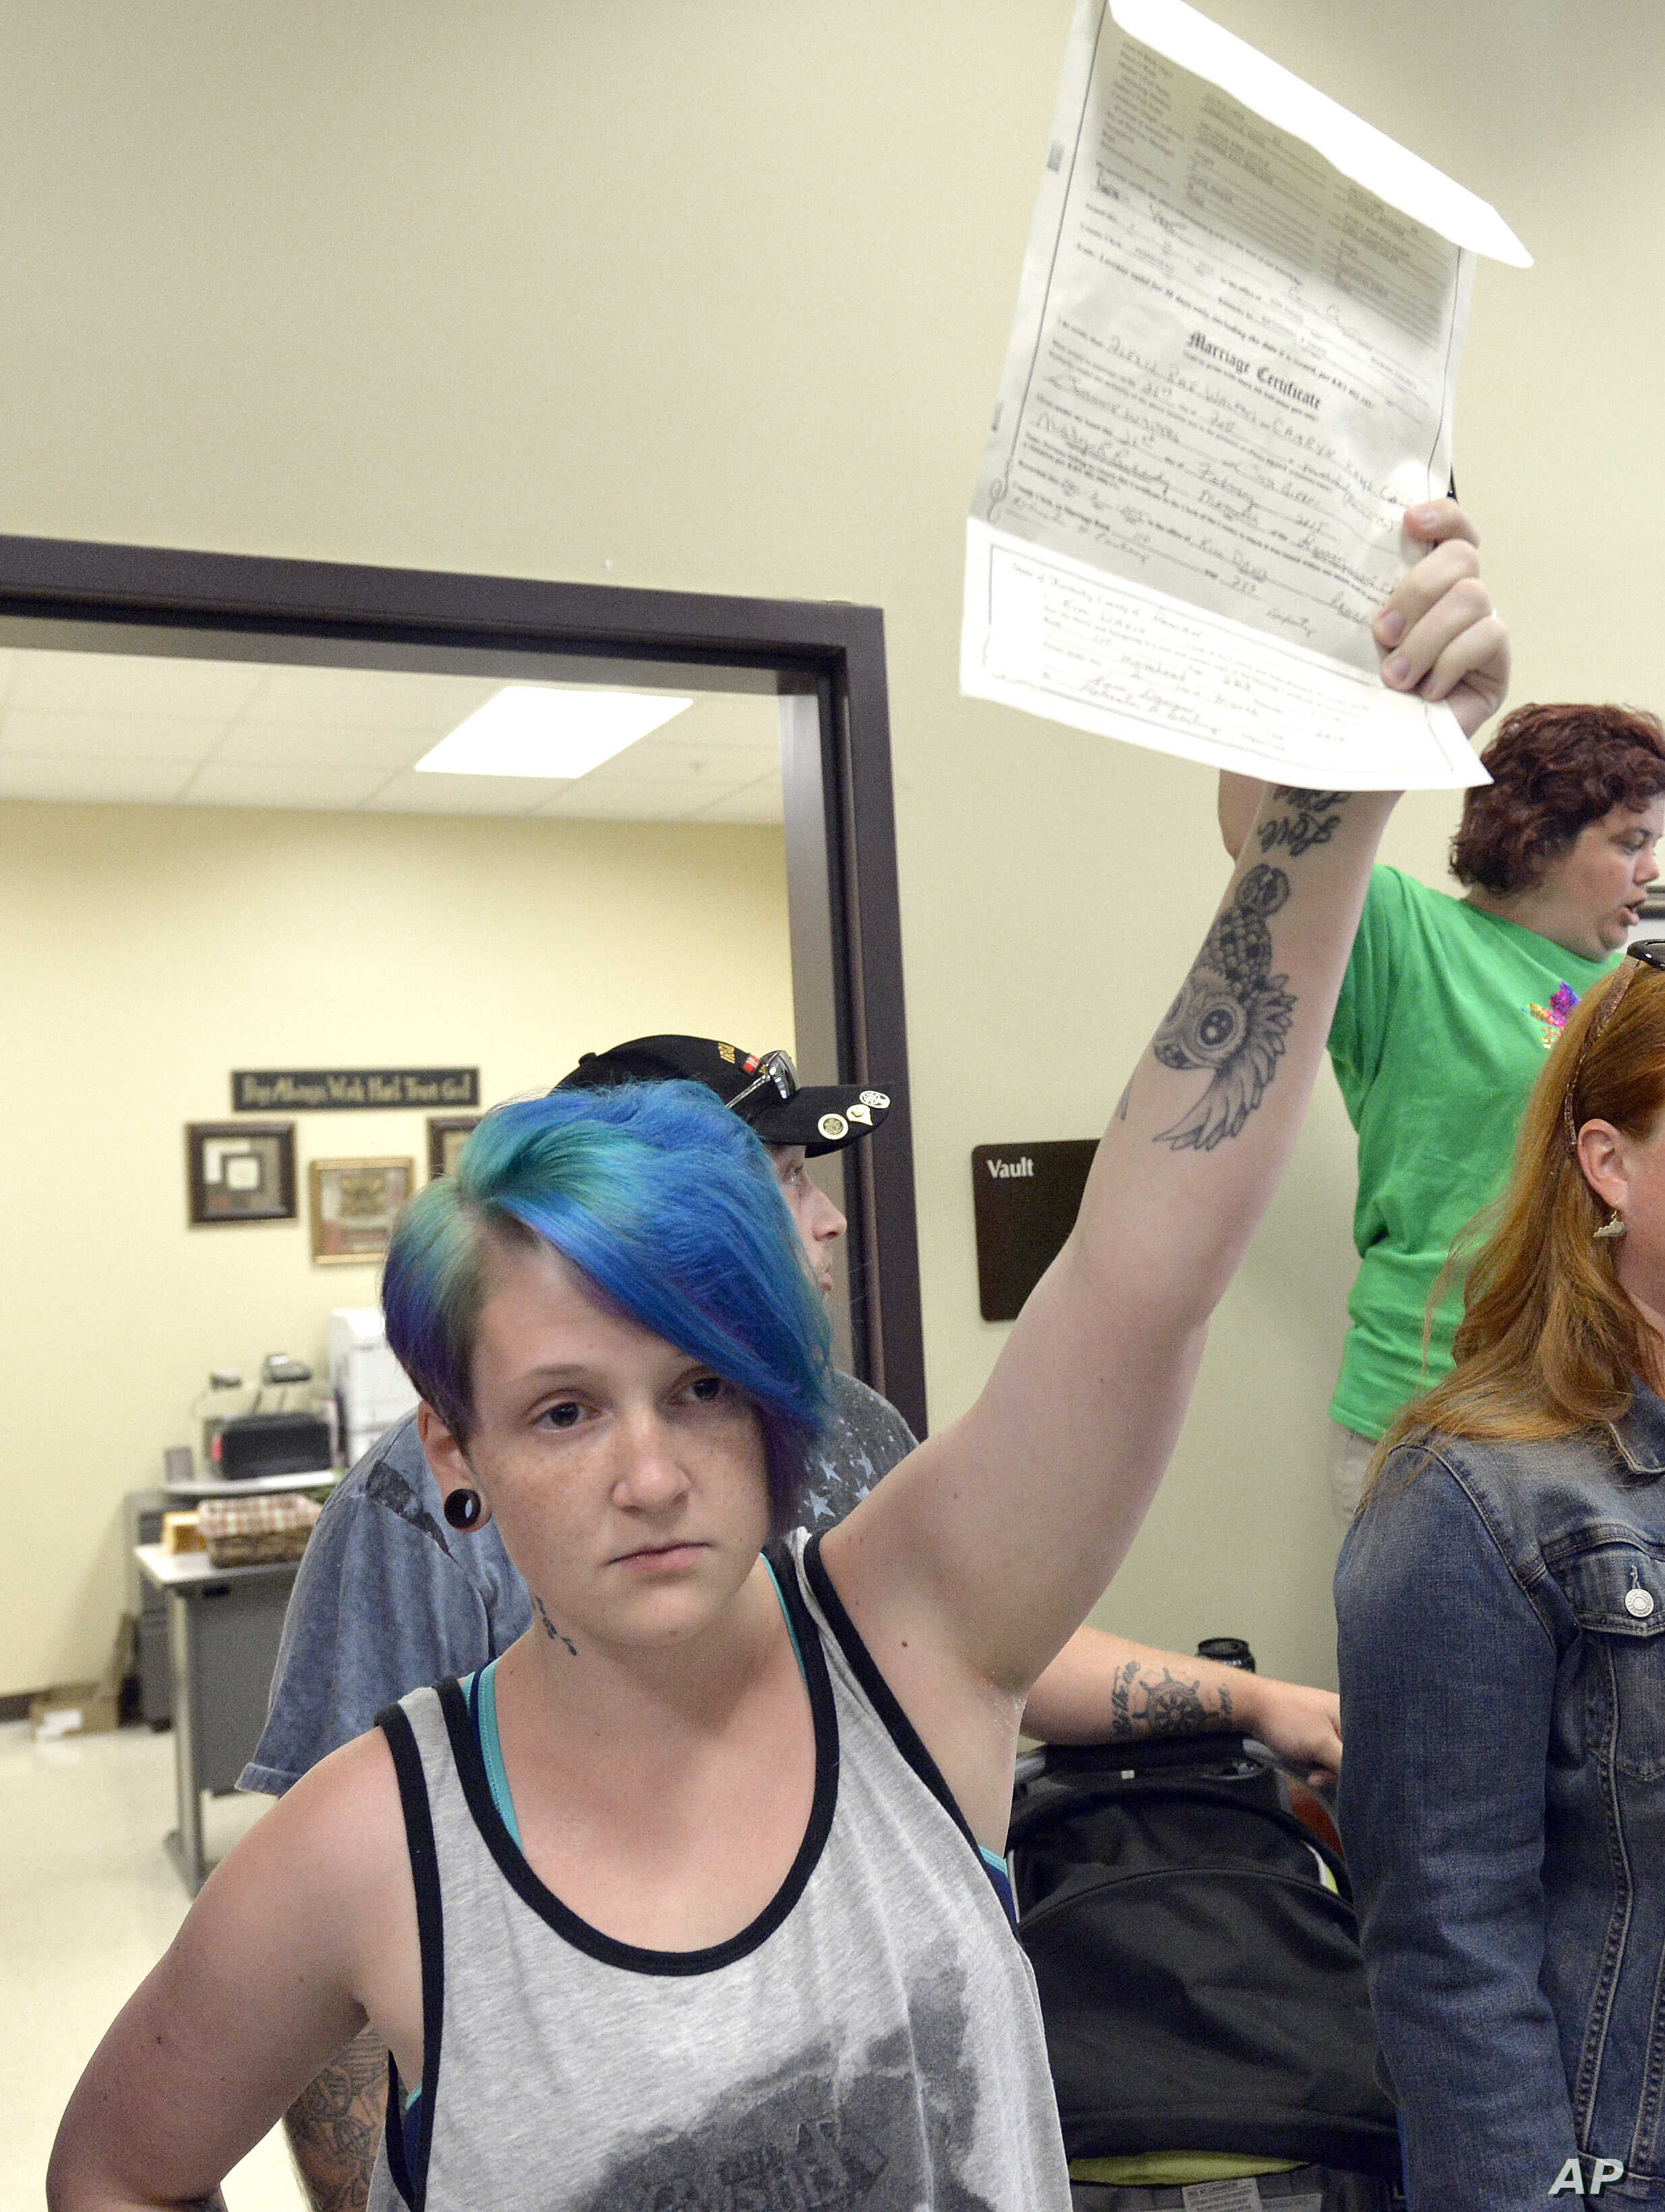 Lexie Colon holds up her marriage certificate at the Rowan County Courthouse in Morehead, Ky., Sept. 1, 2015. Signed by clerk Kim Davis, it certifies her marriage to Camryn Colon, a transgender male.